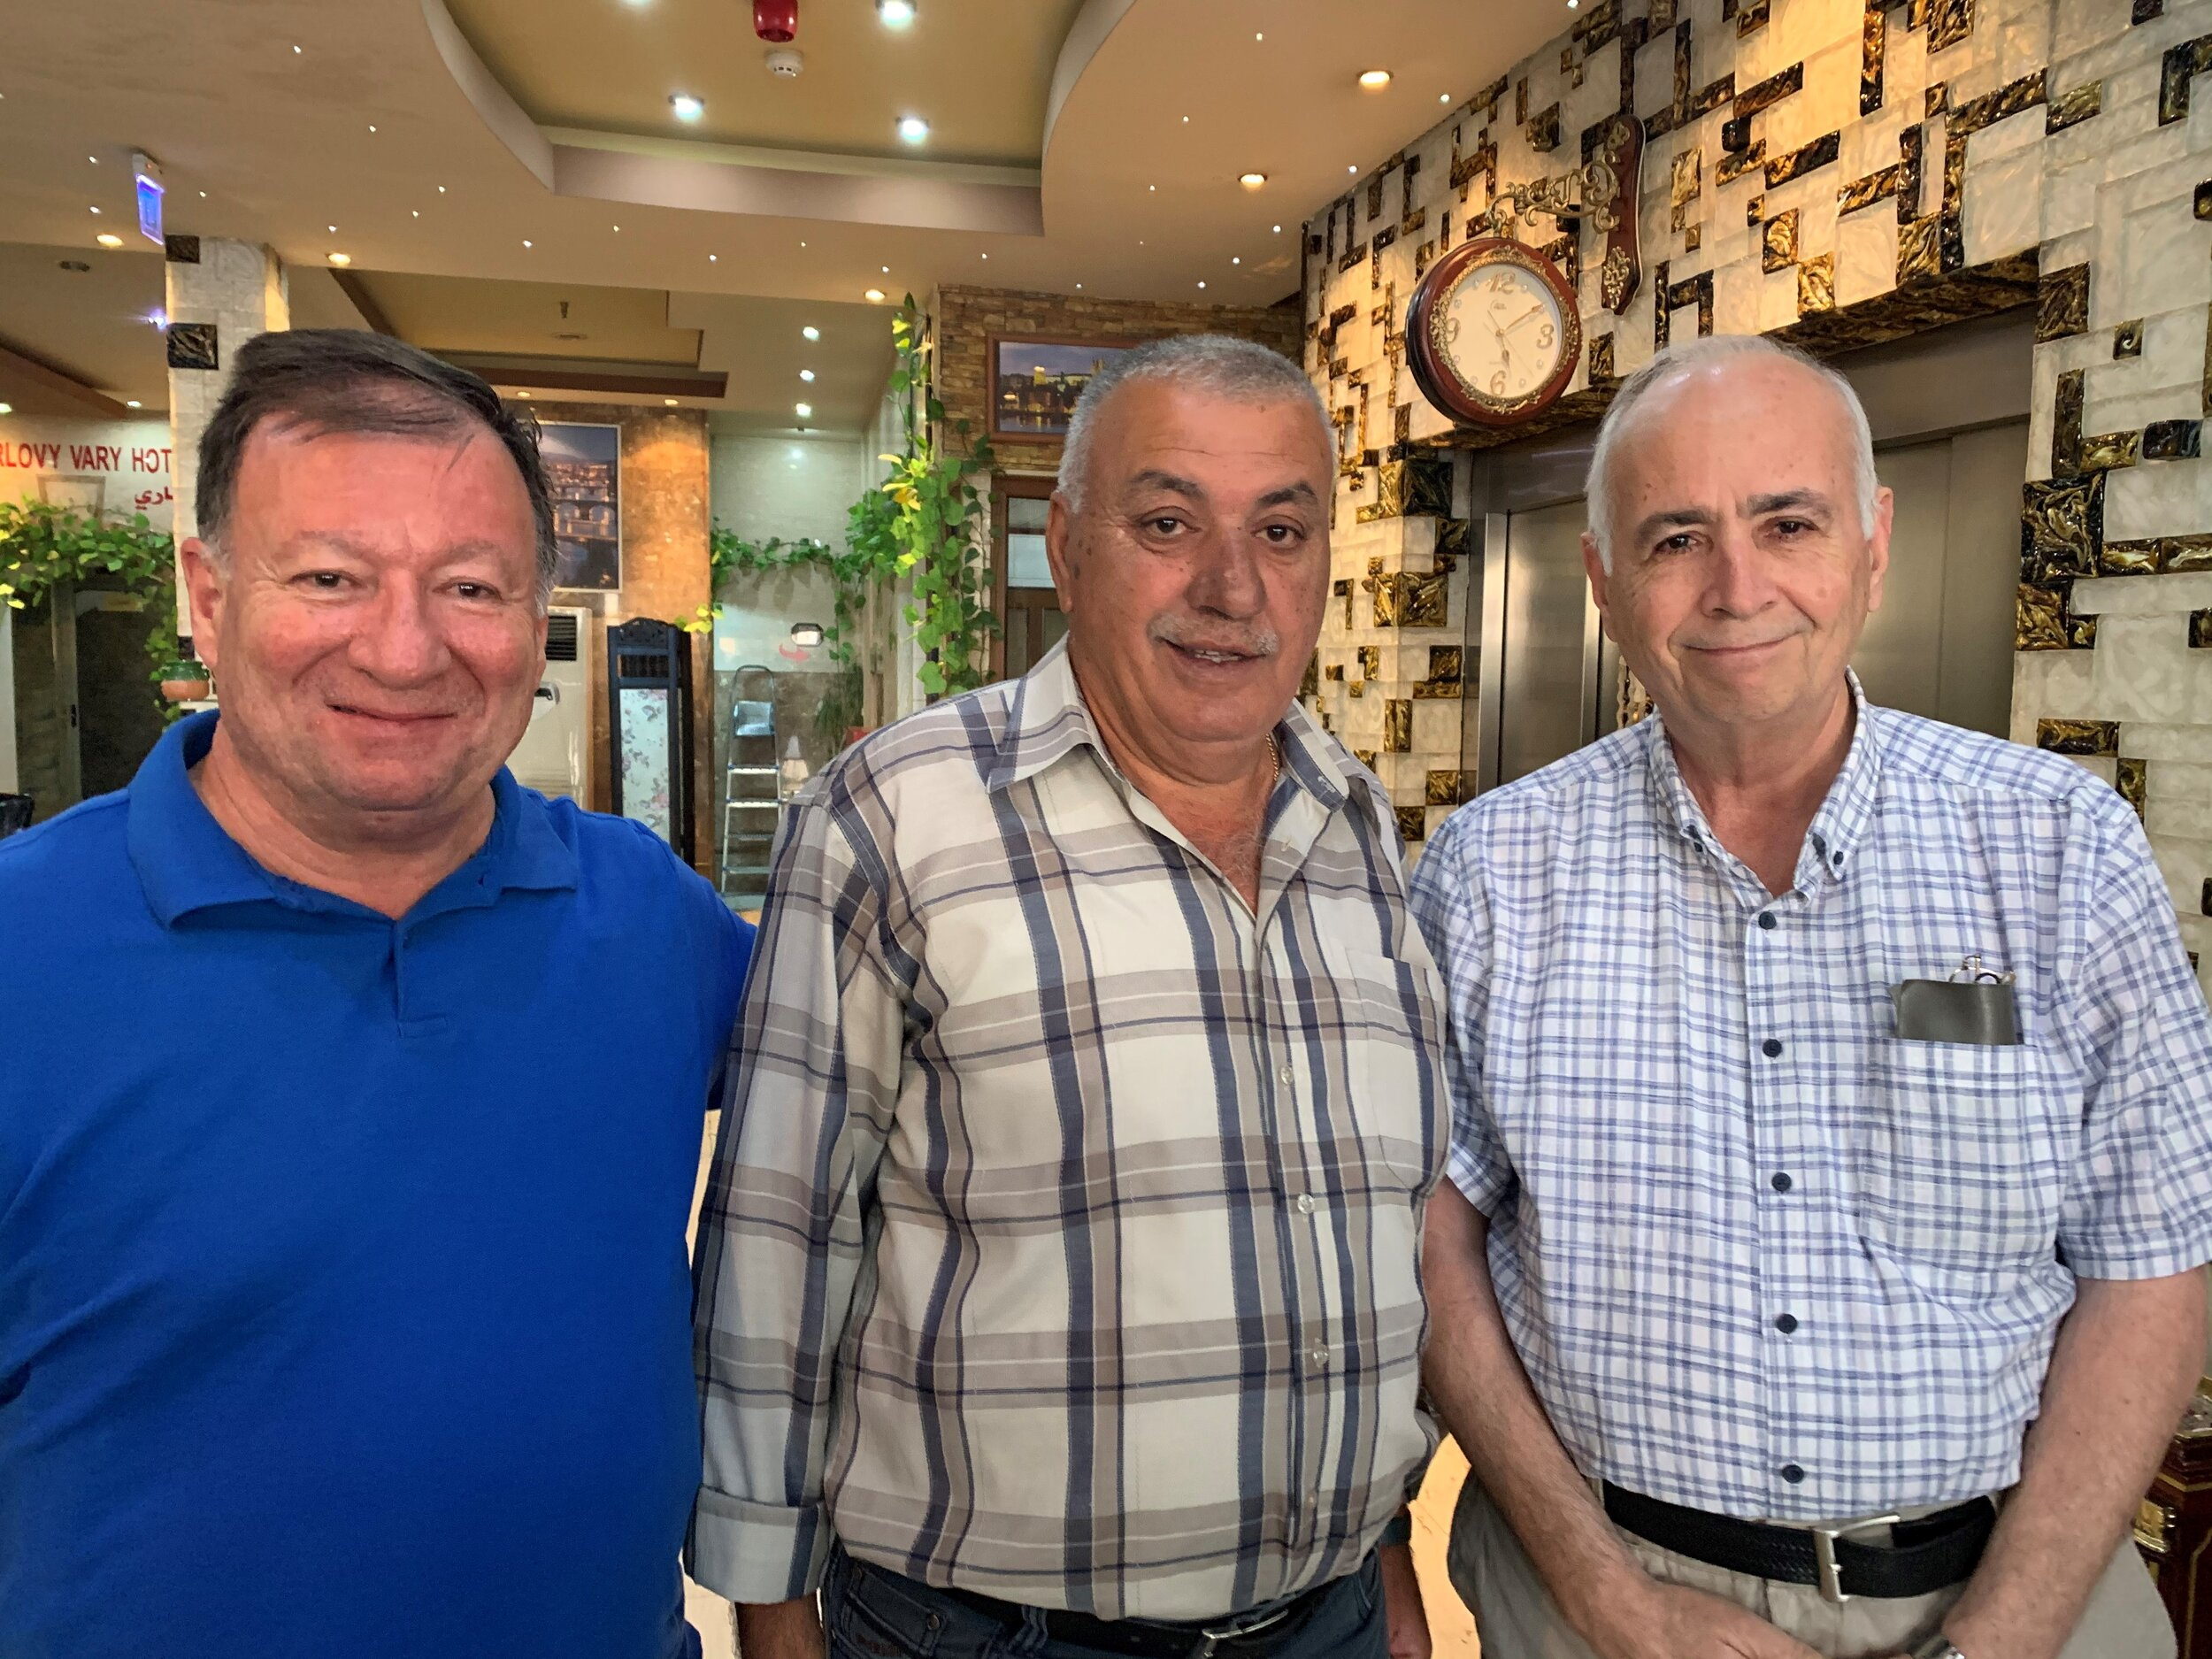 Some of our Iraqi Presbyterian family greeting us at our hotel in Erbil: Rev Haitham Jazrawi, Elder Amman Daood, Rev Farouk Hammo